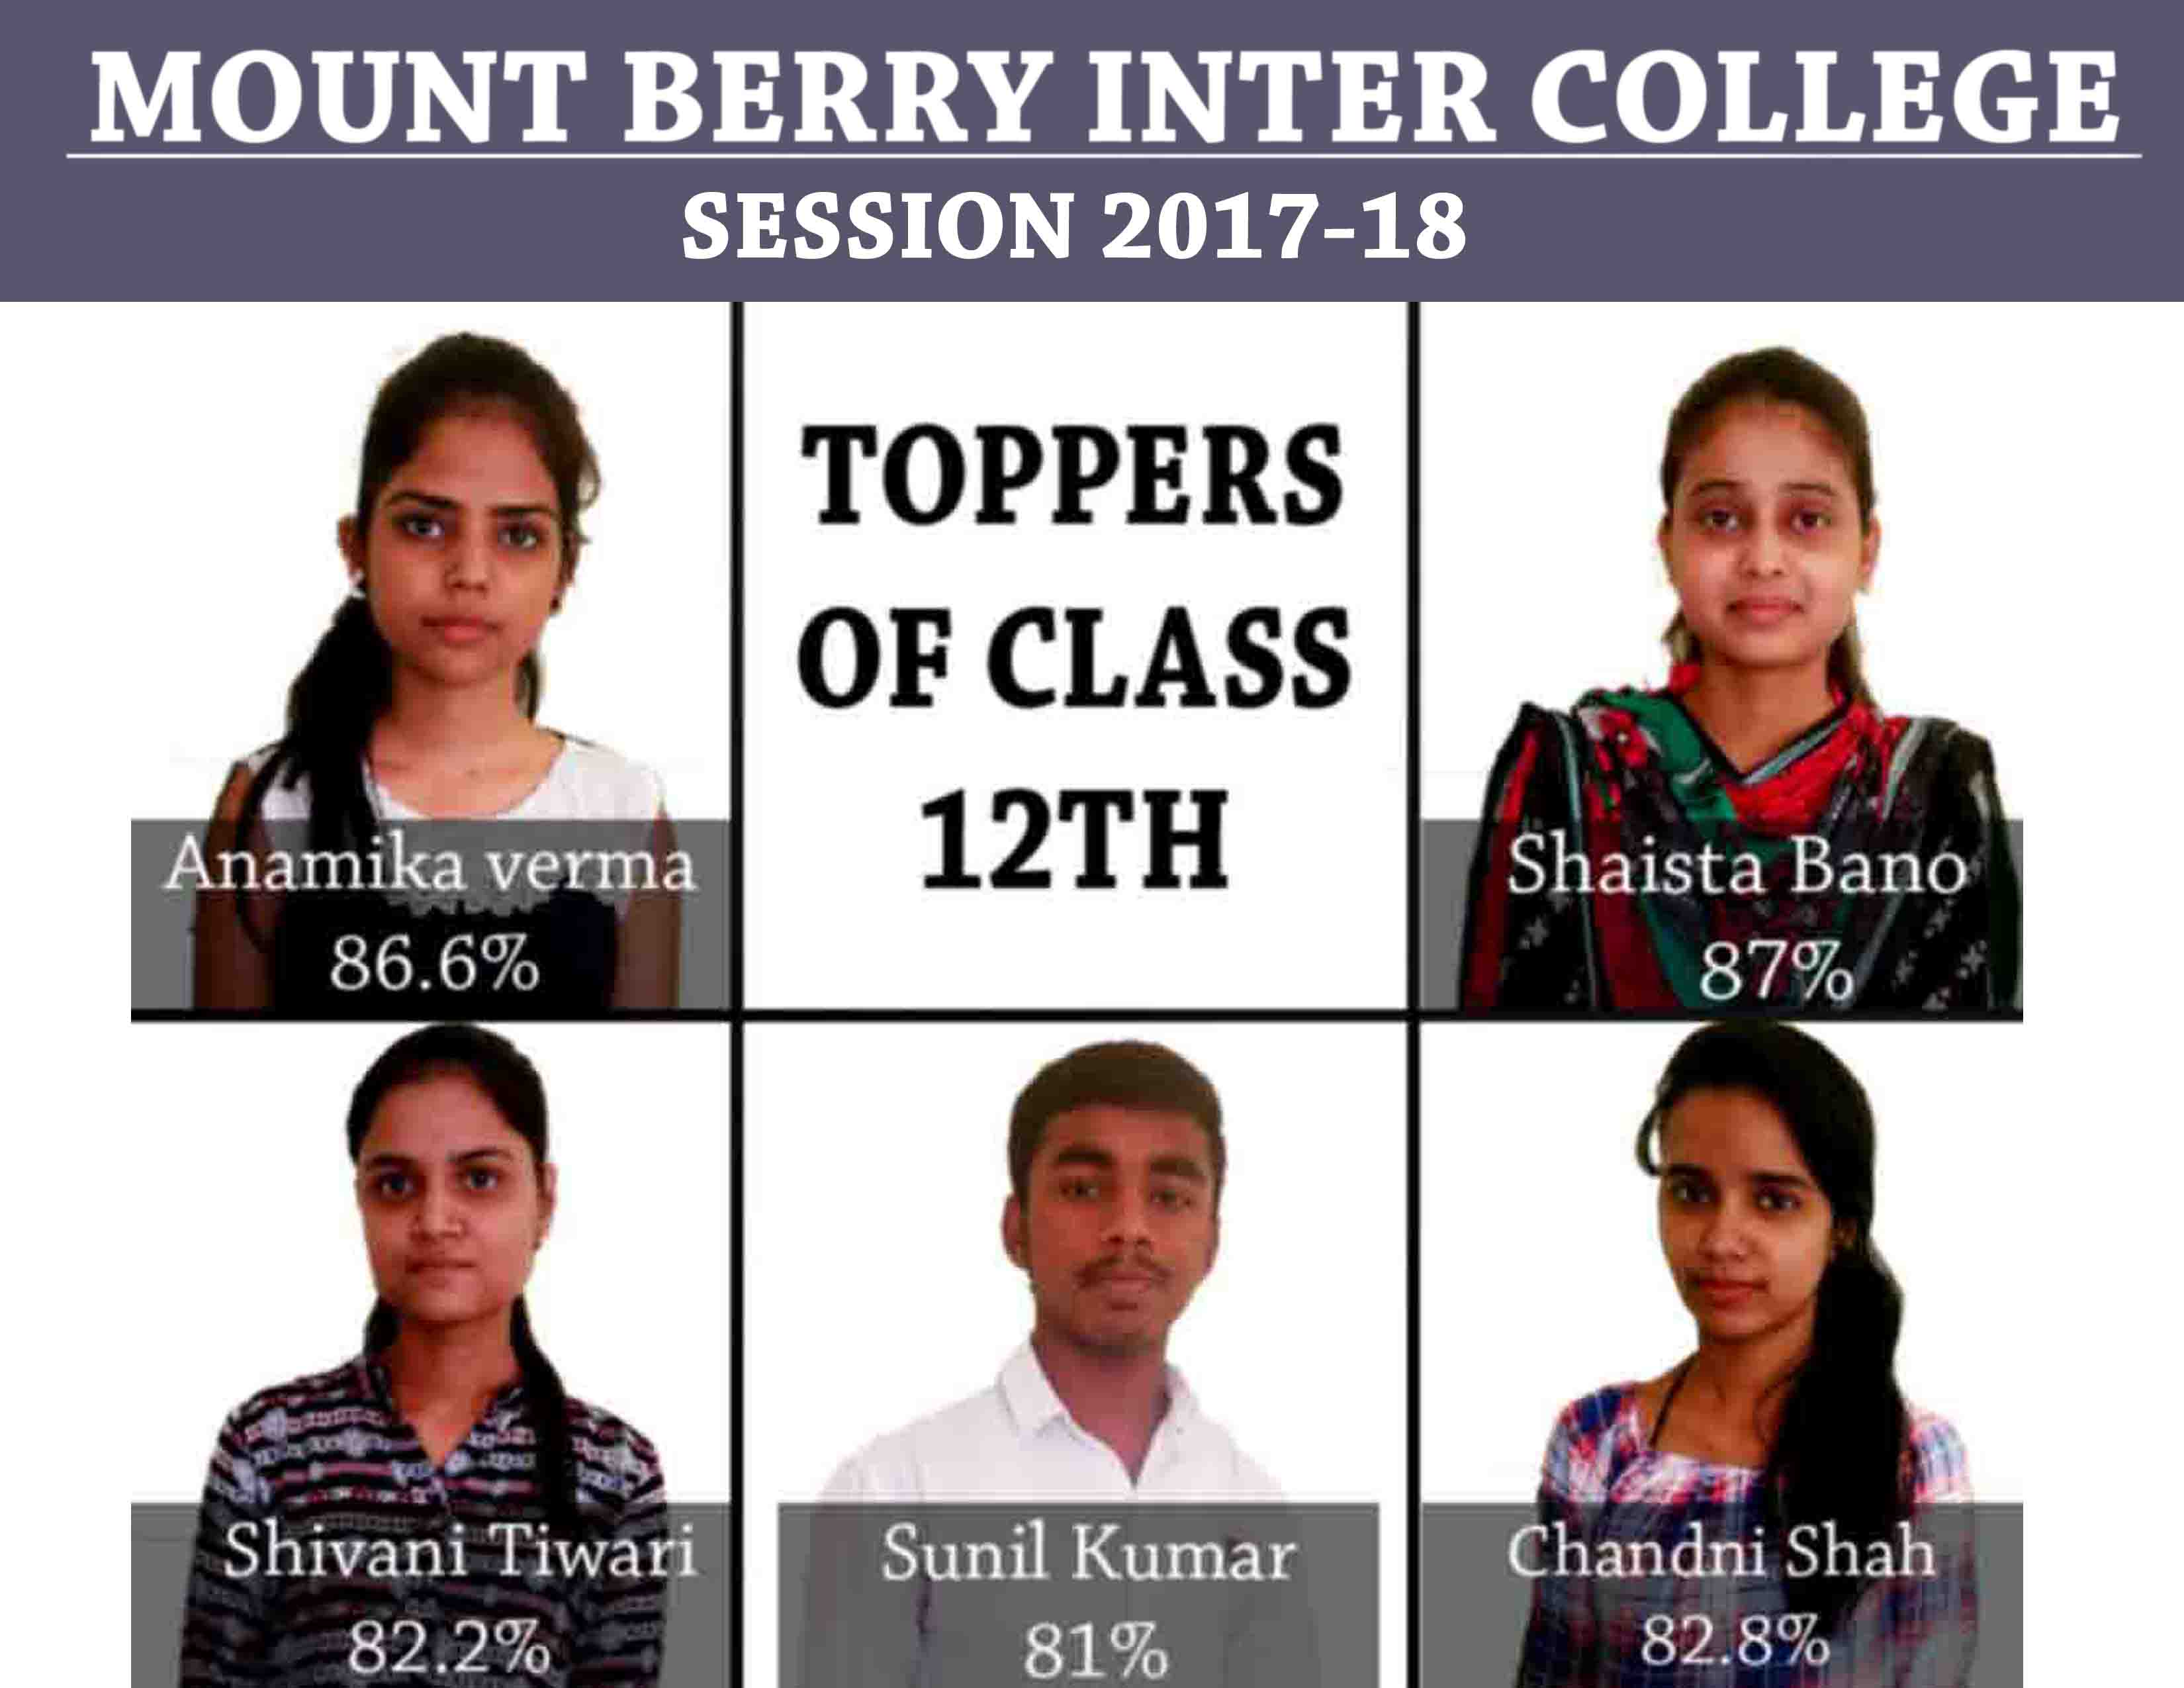 SUCCESS STORY OF MOUNT BERRY INTER COLLEGE